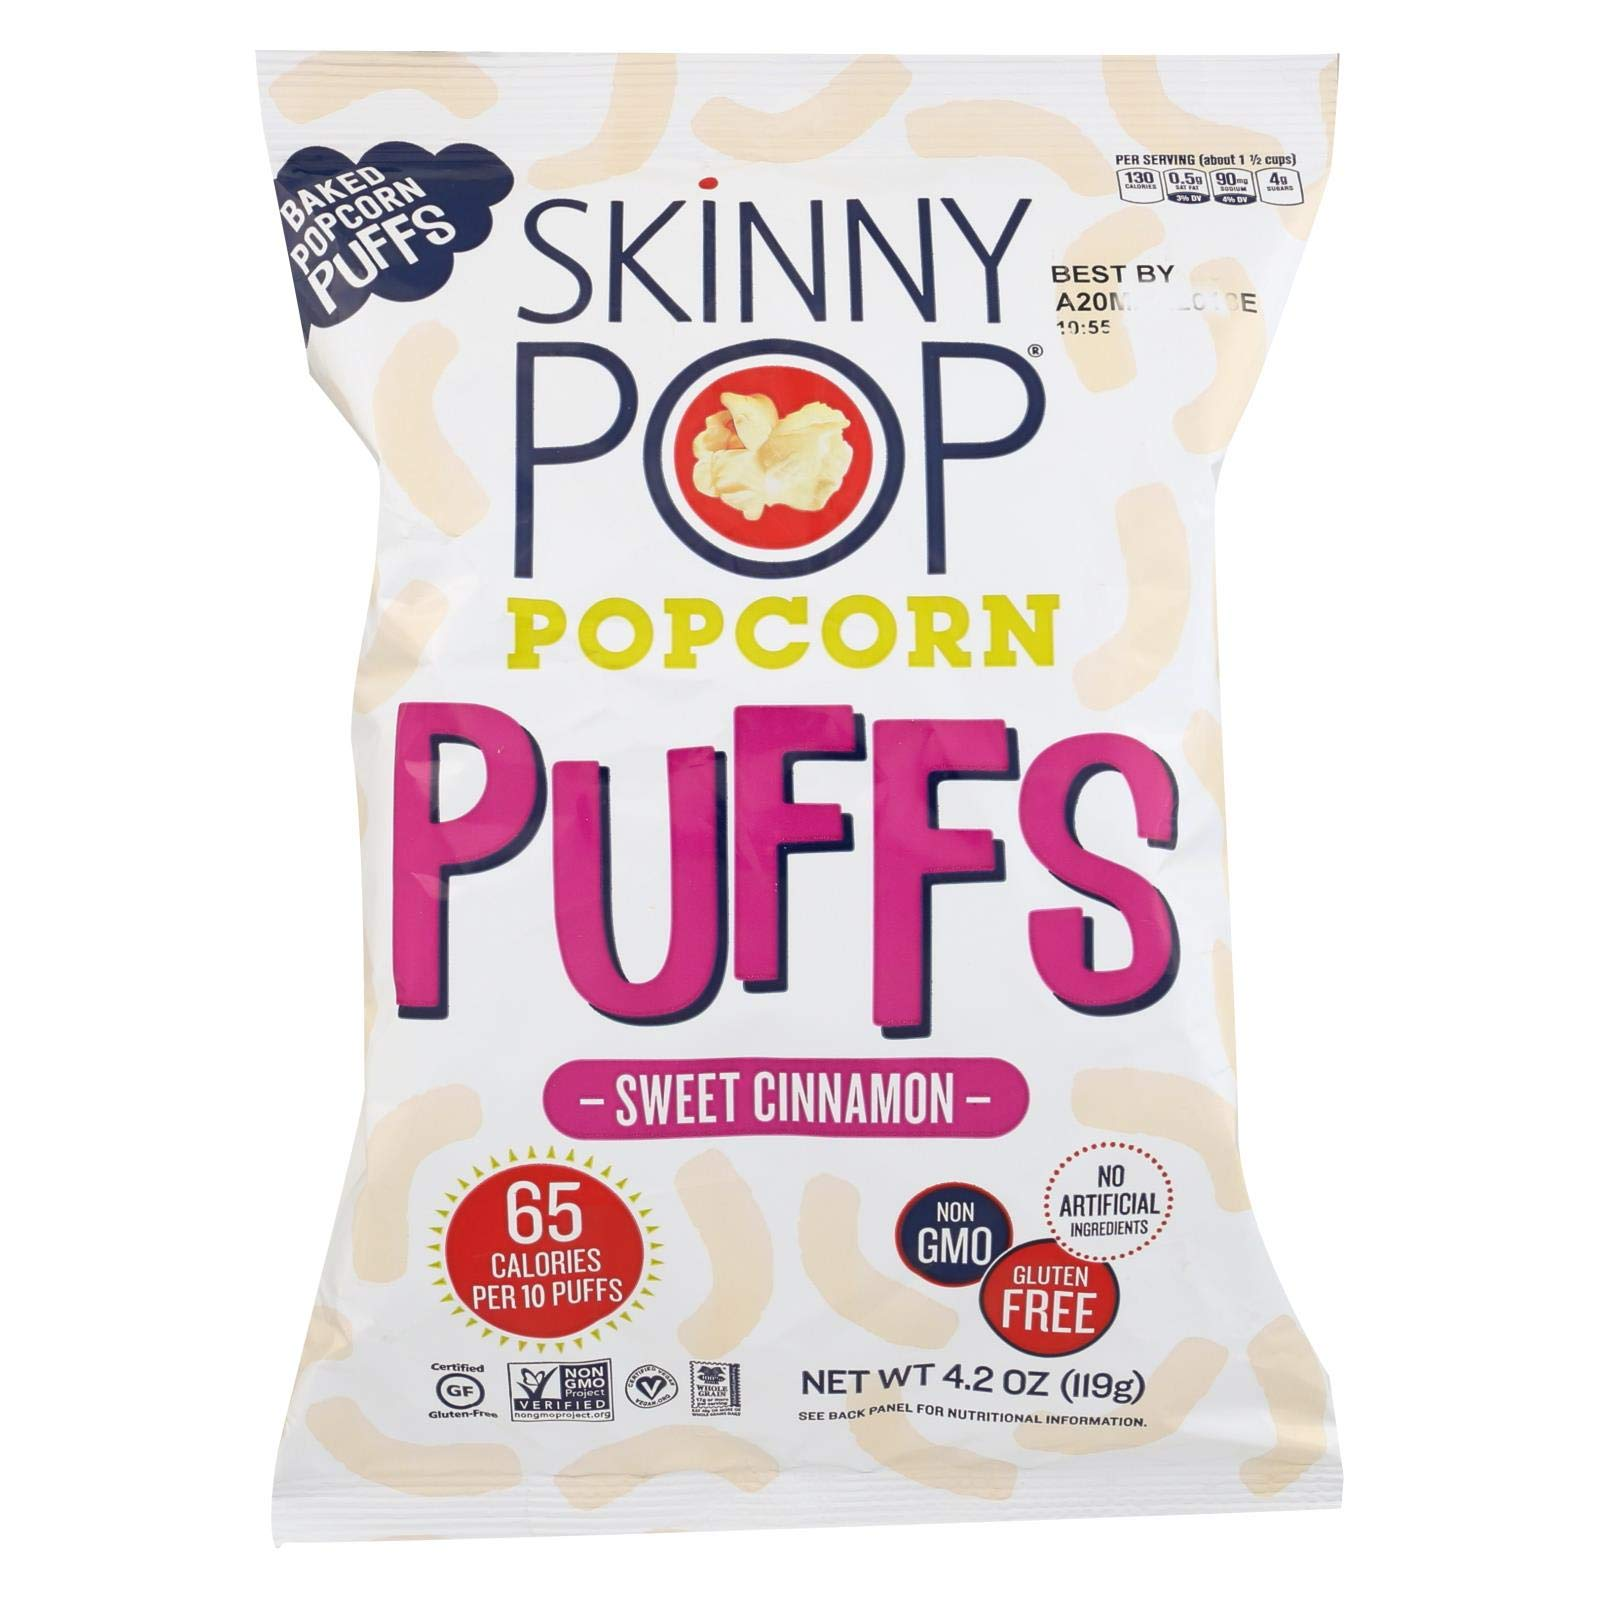 SKINNYPOP POPCORN, PCORN, PUFFS, SWT CINNAMON, Pack of 12, Size 4.2 OZ - No Artificial Ingredients Gluten Free GMO Free Kosher Contains Refined Sugar Vegan